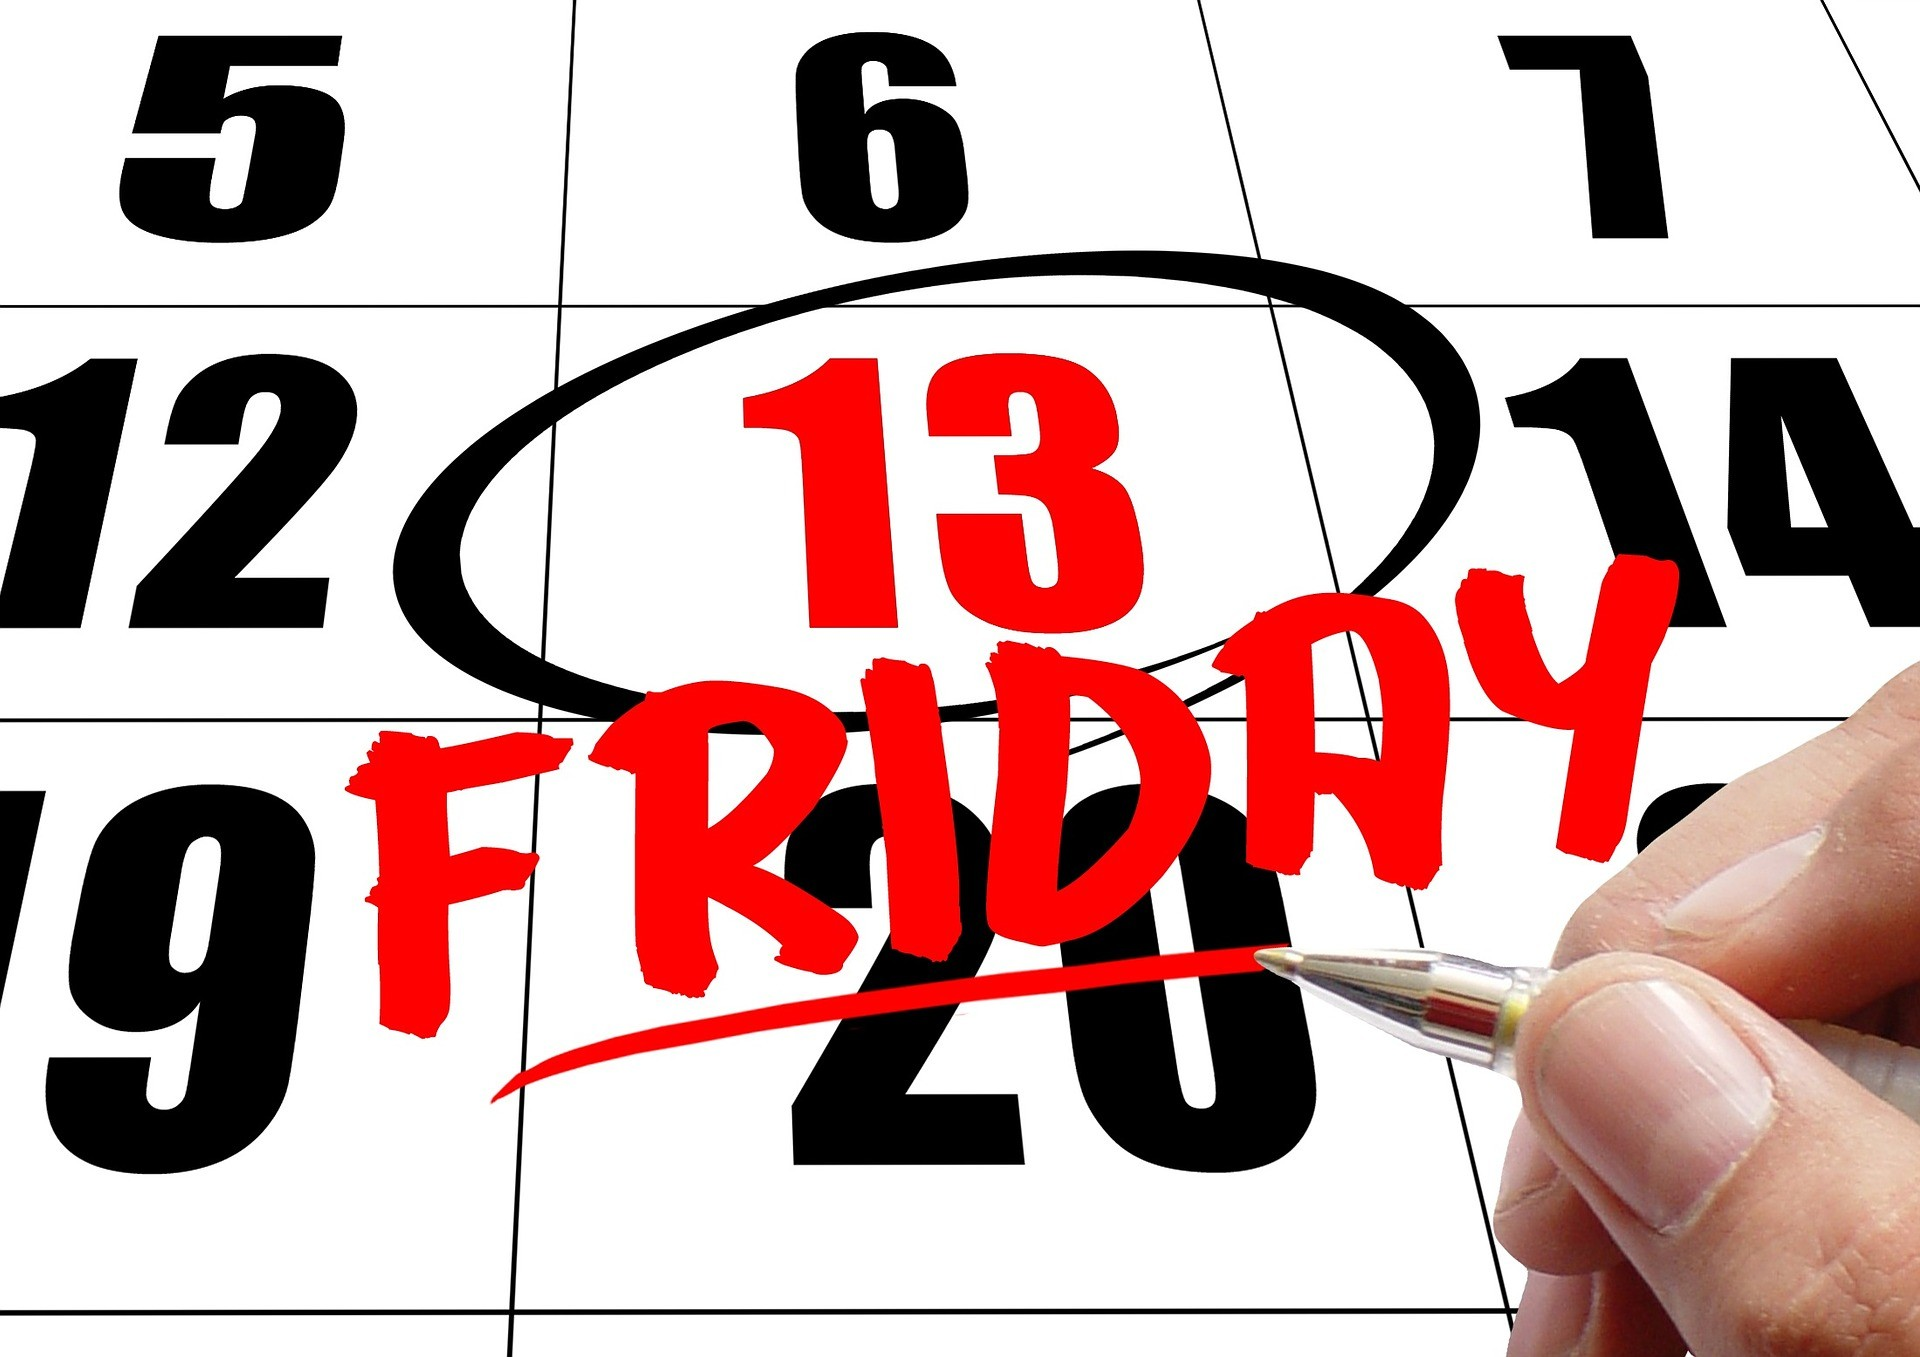 Do you believe Friday the 13th can really bring bad luck? If so, what's your evidence? If not, why not?